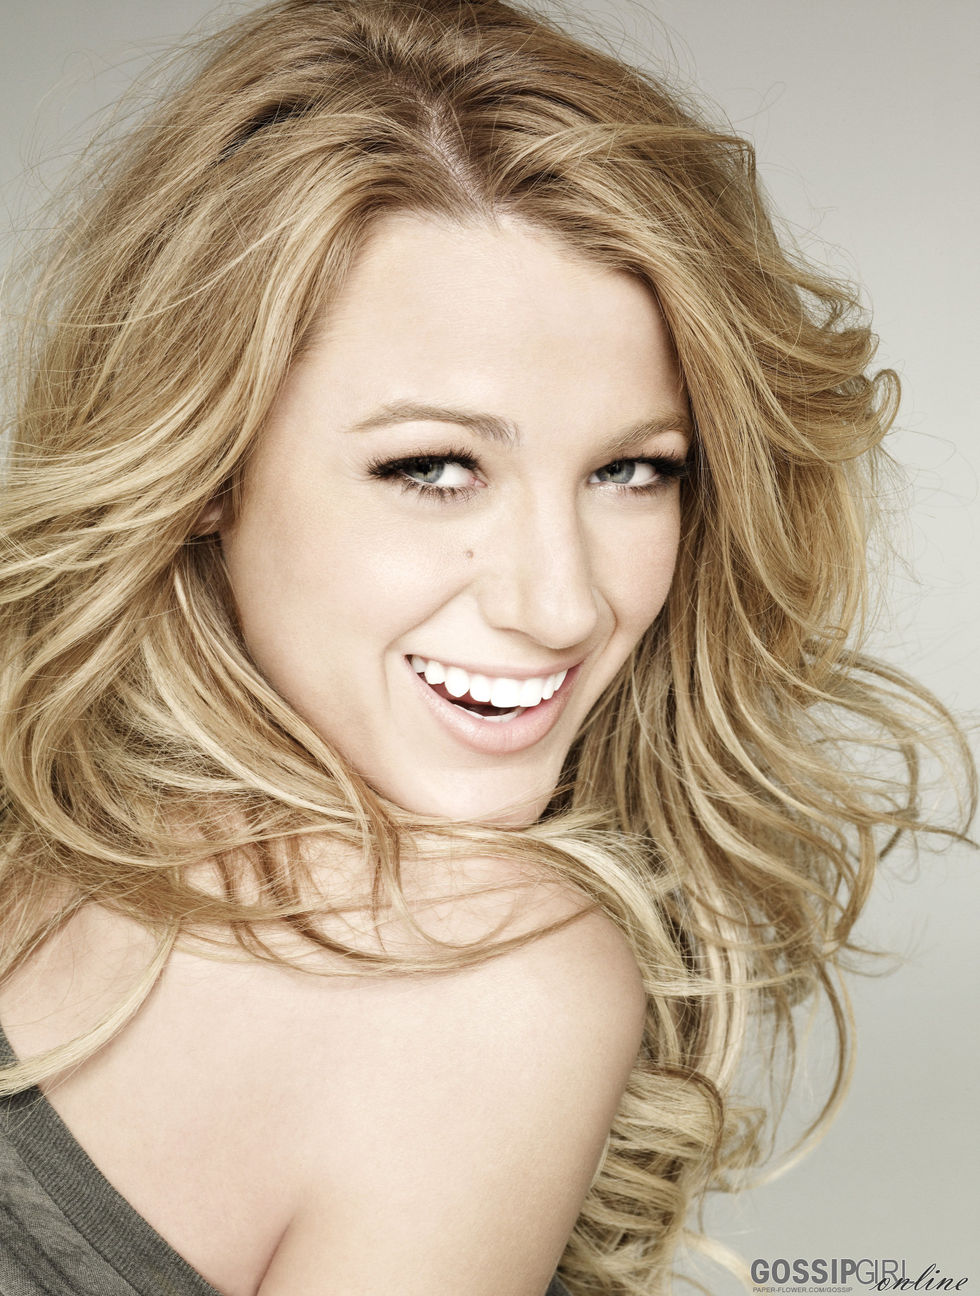 random images actress - blake lively hd wallpaper and background